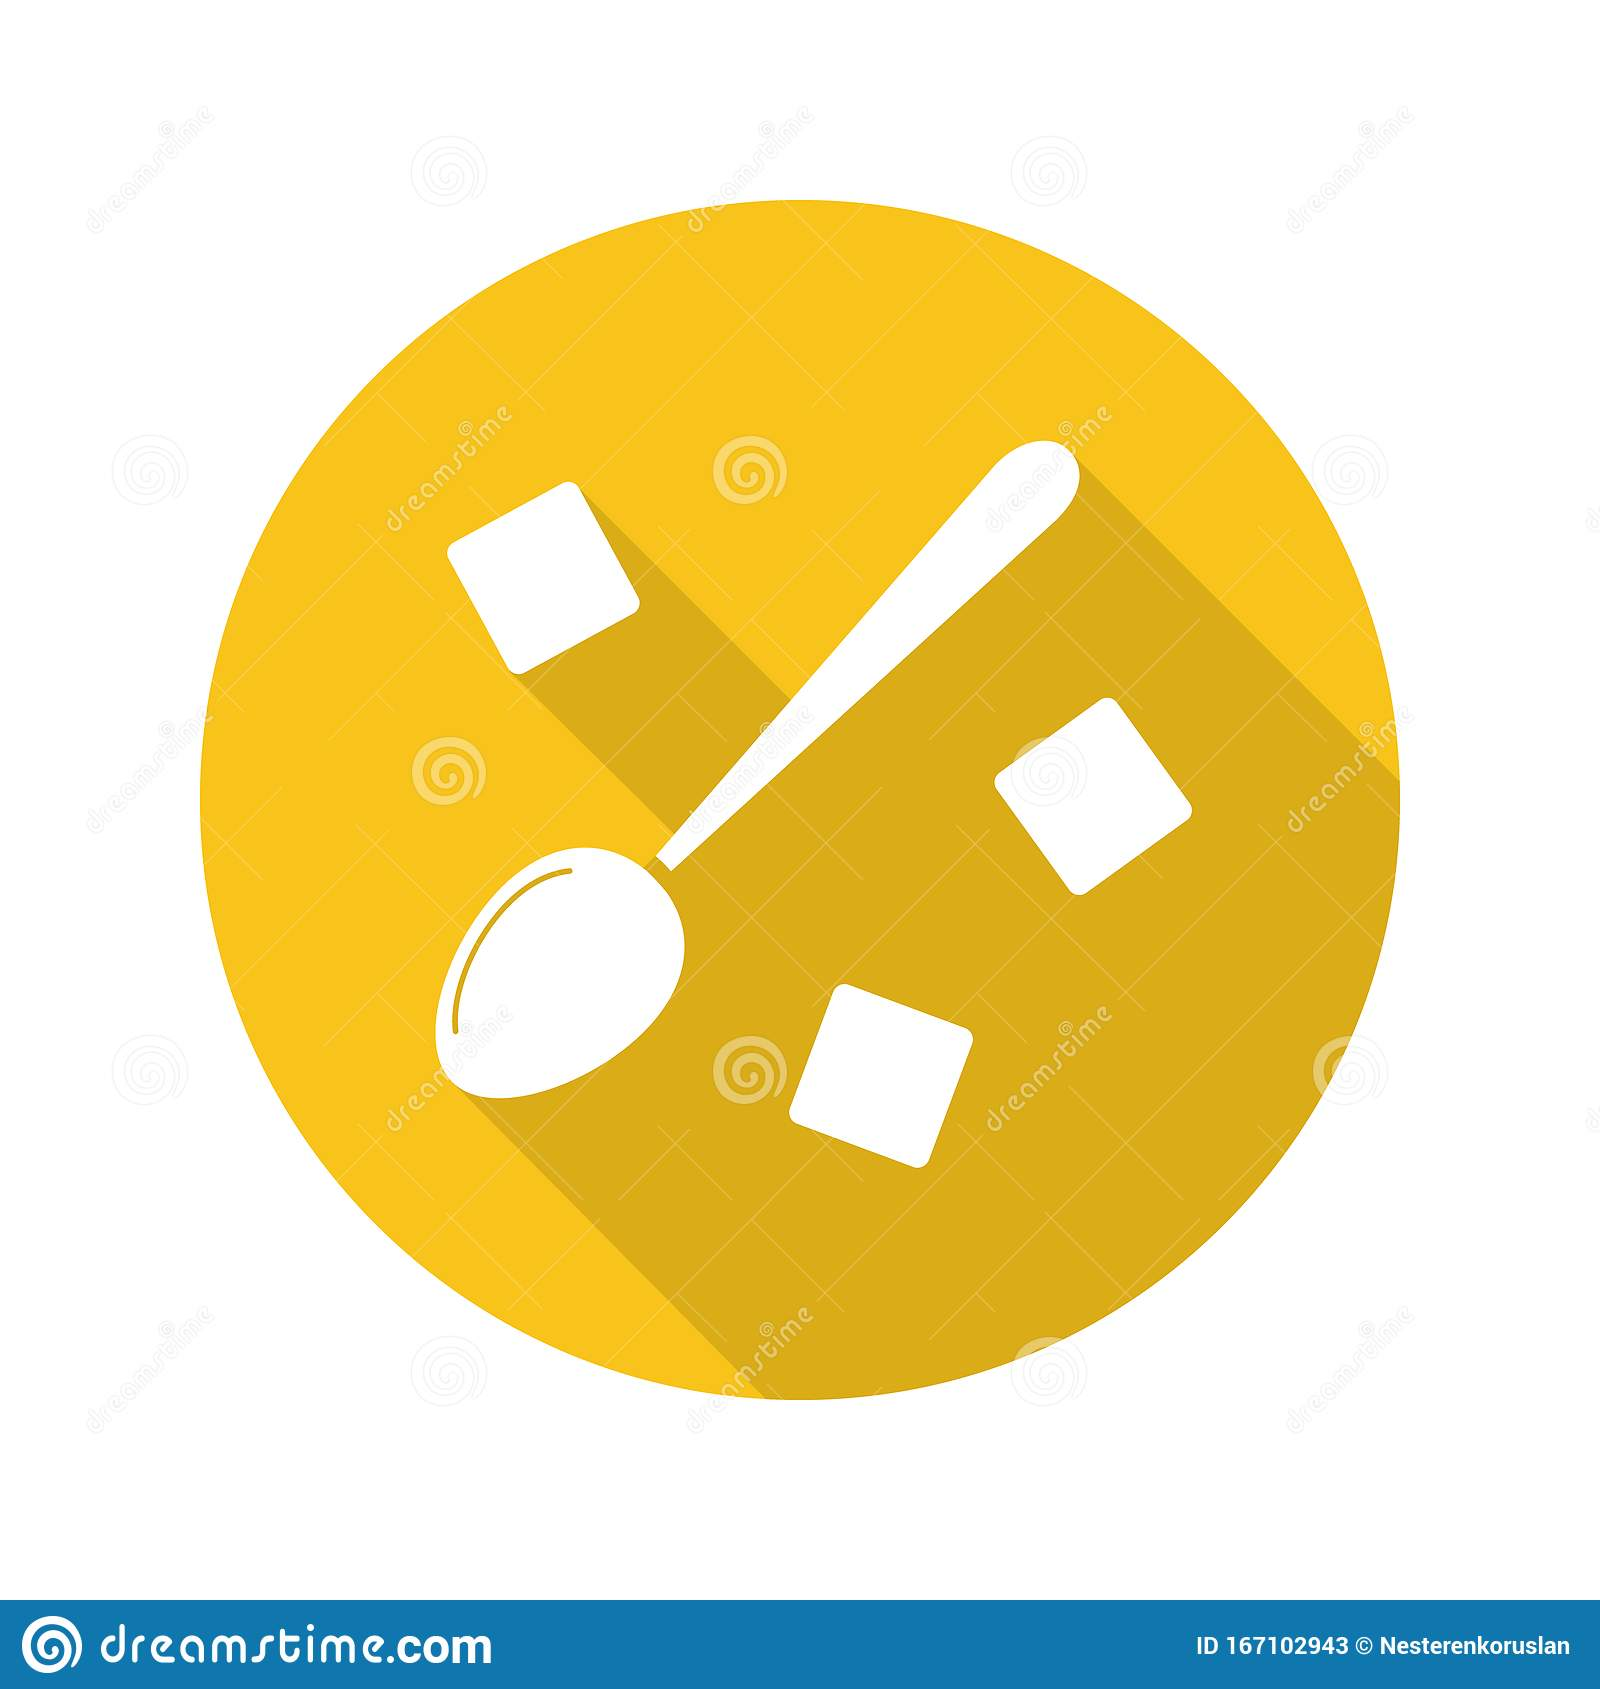 Spoon With Refined Sugar Cubes Flat Design Long Shadow